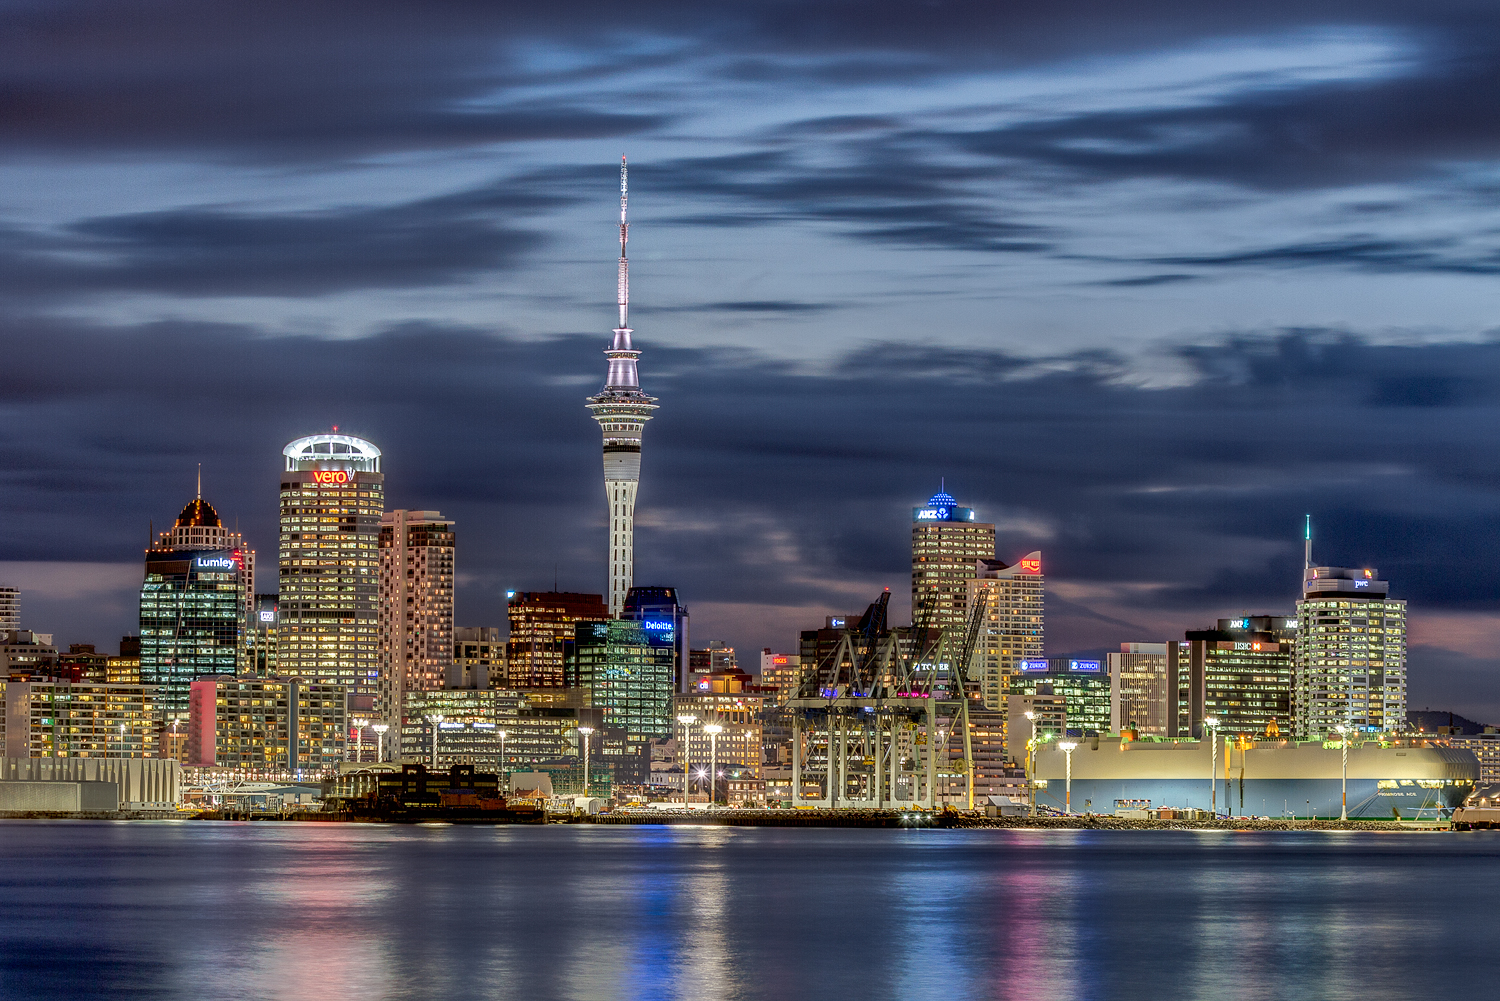 Auckland City At Dusk. 6 shot HDR | 84  mm | 0.4, 1.6, 4.0, 6.0, 15.0, 30.0 sec | f7.1 | ISO200